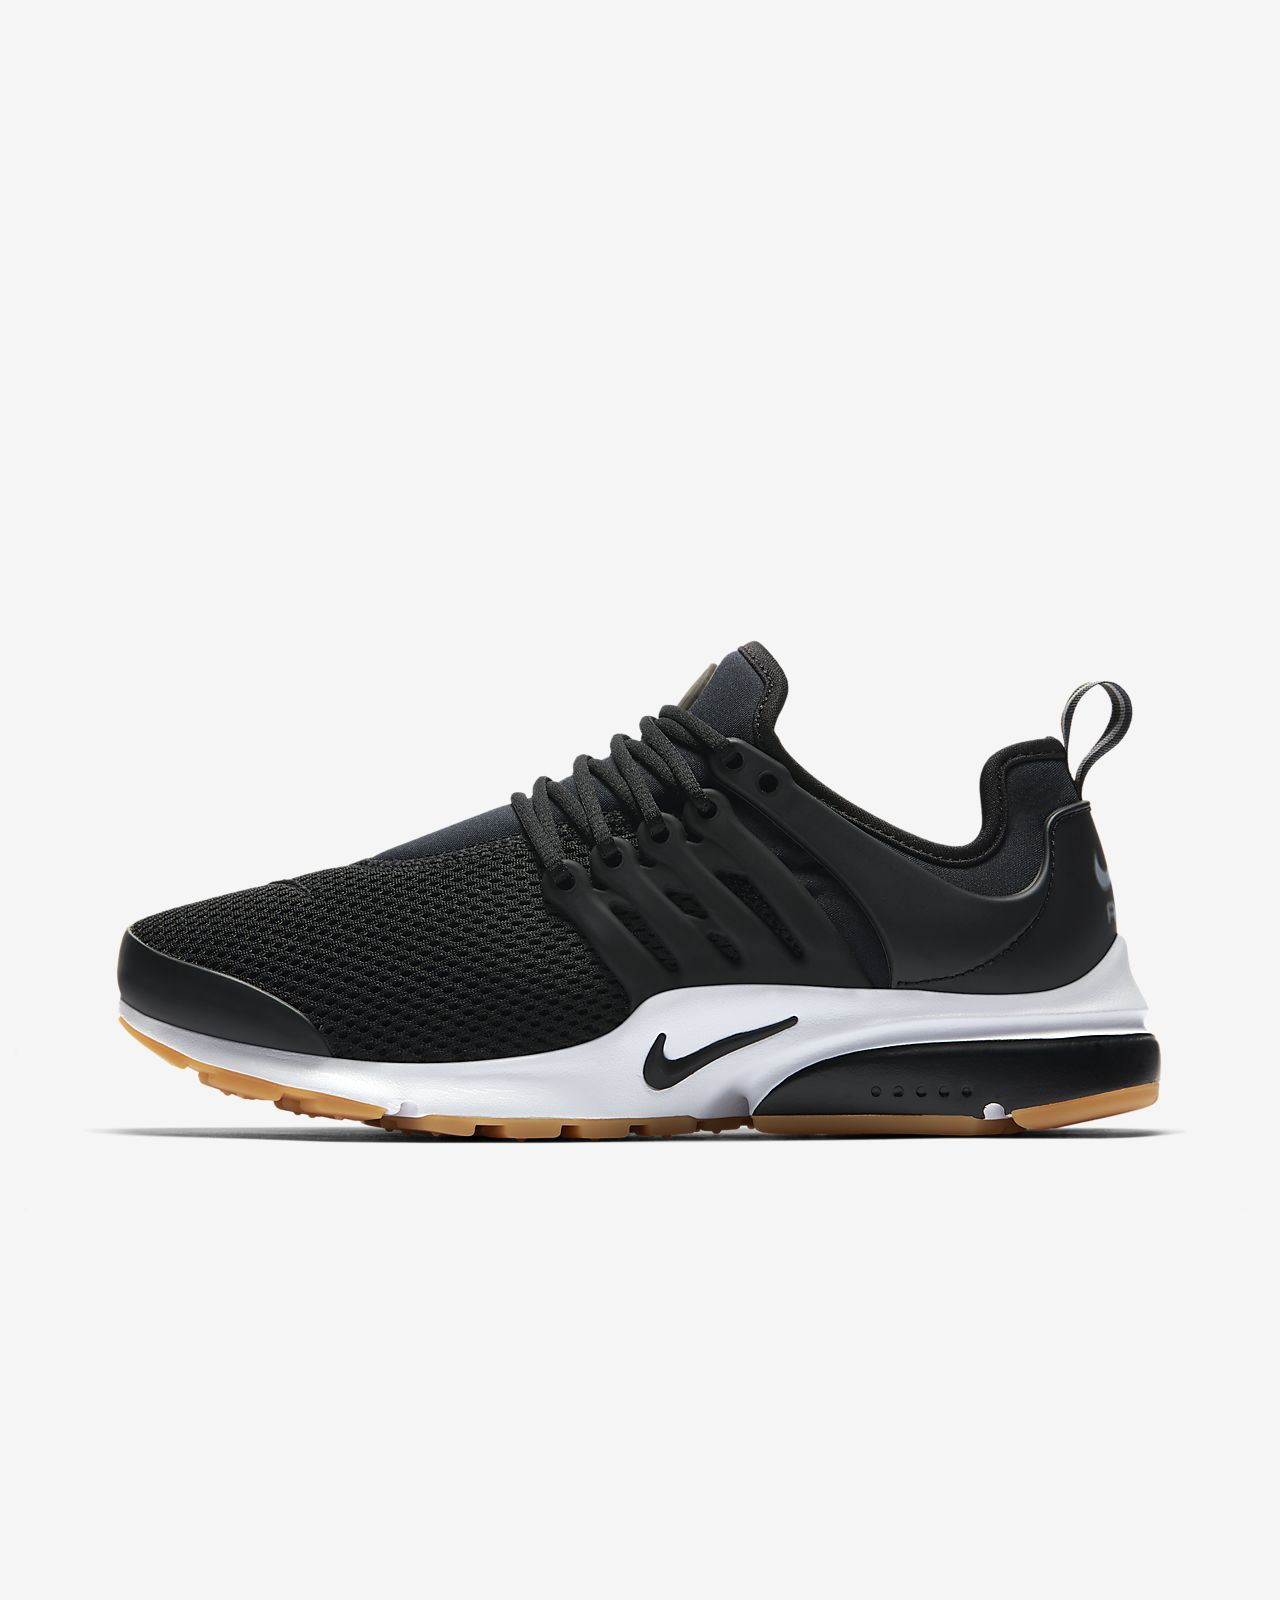 watch e2ee0 d9866 ... Nike Air Presto Women s Shoe